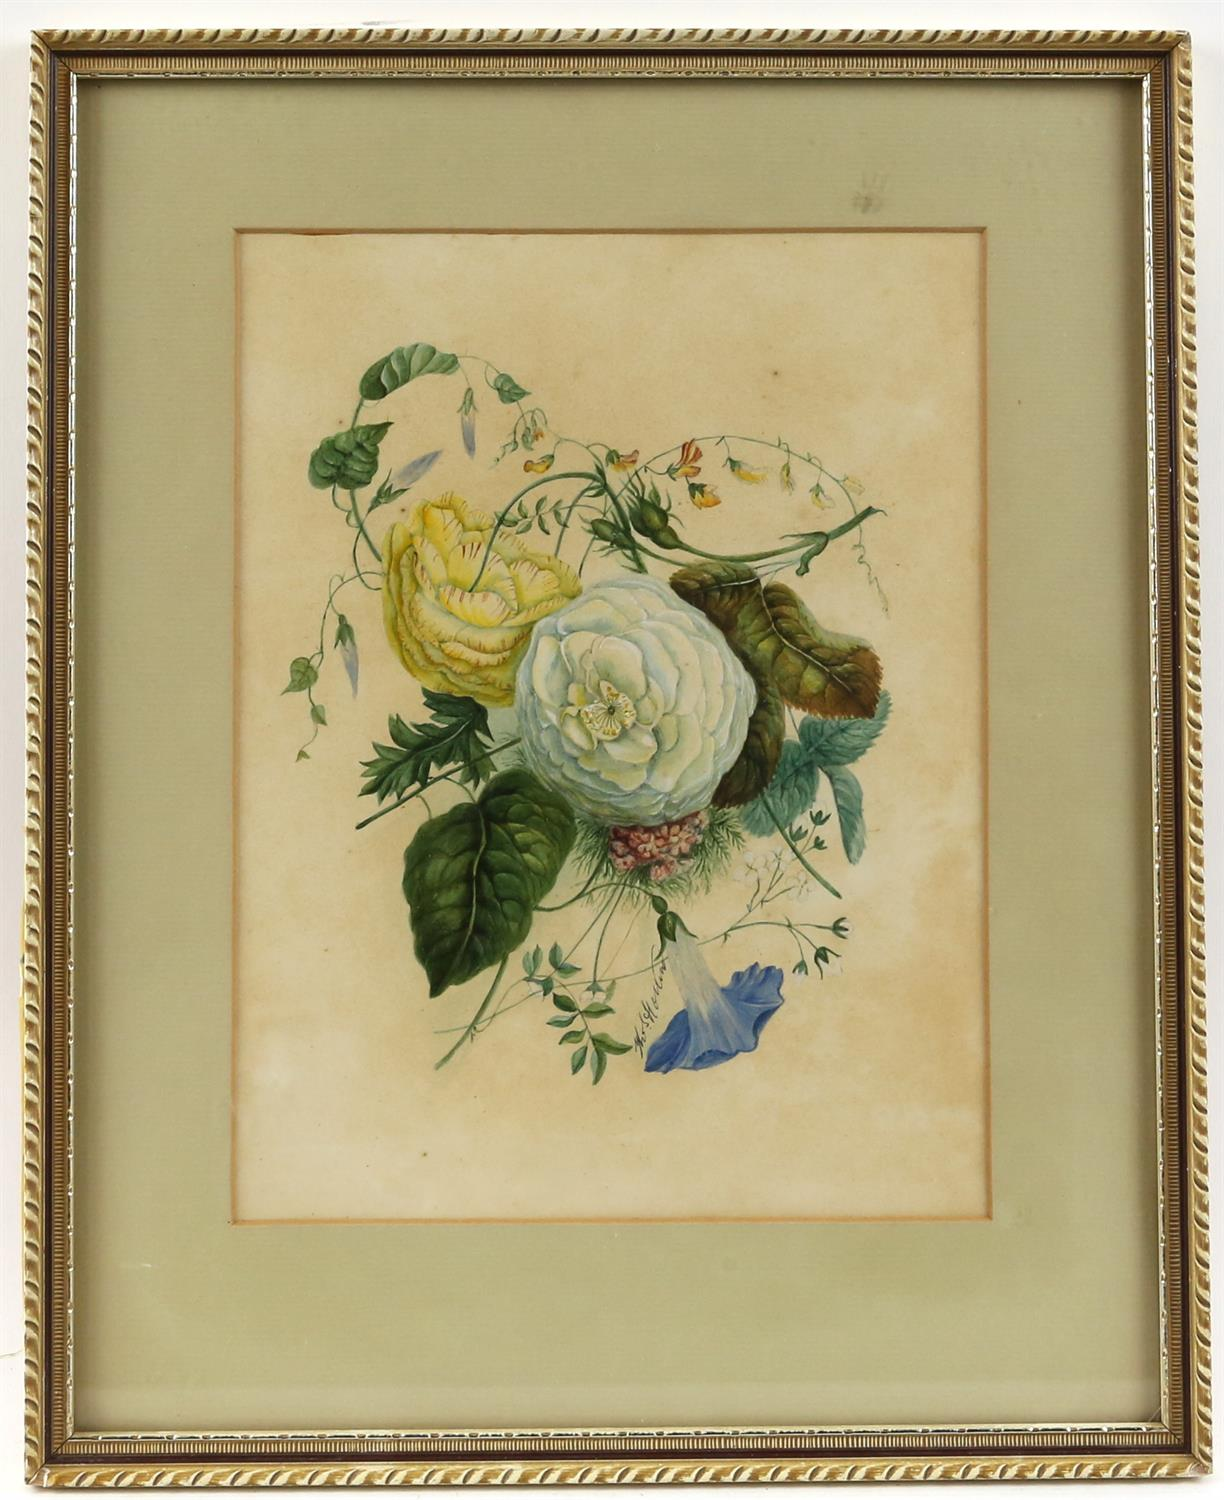 Thomas Holland (British, 1795-1865), set of four flower studies, signed, watercolours, - Image 6 of 7